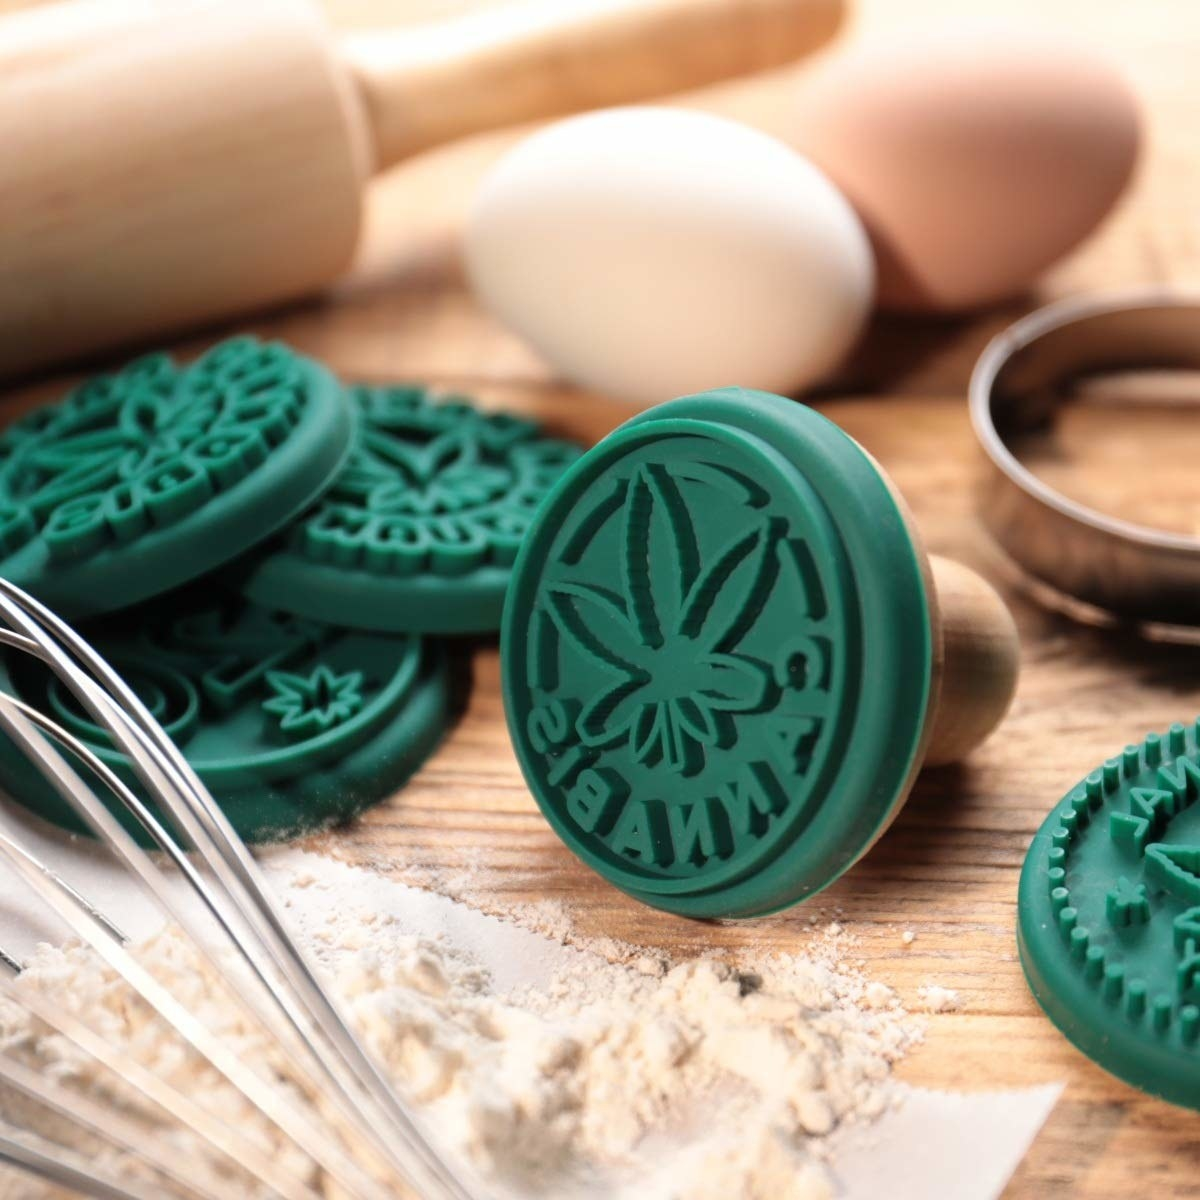 Rubber stamps with cannabis-themed designs